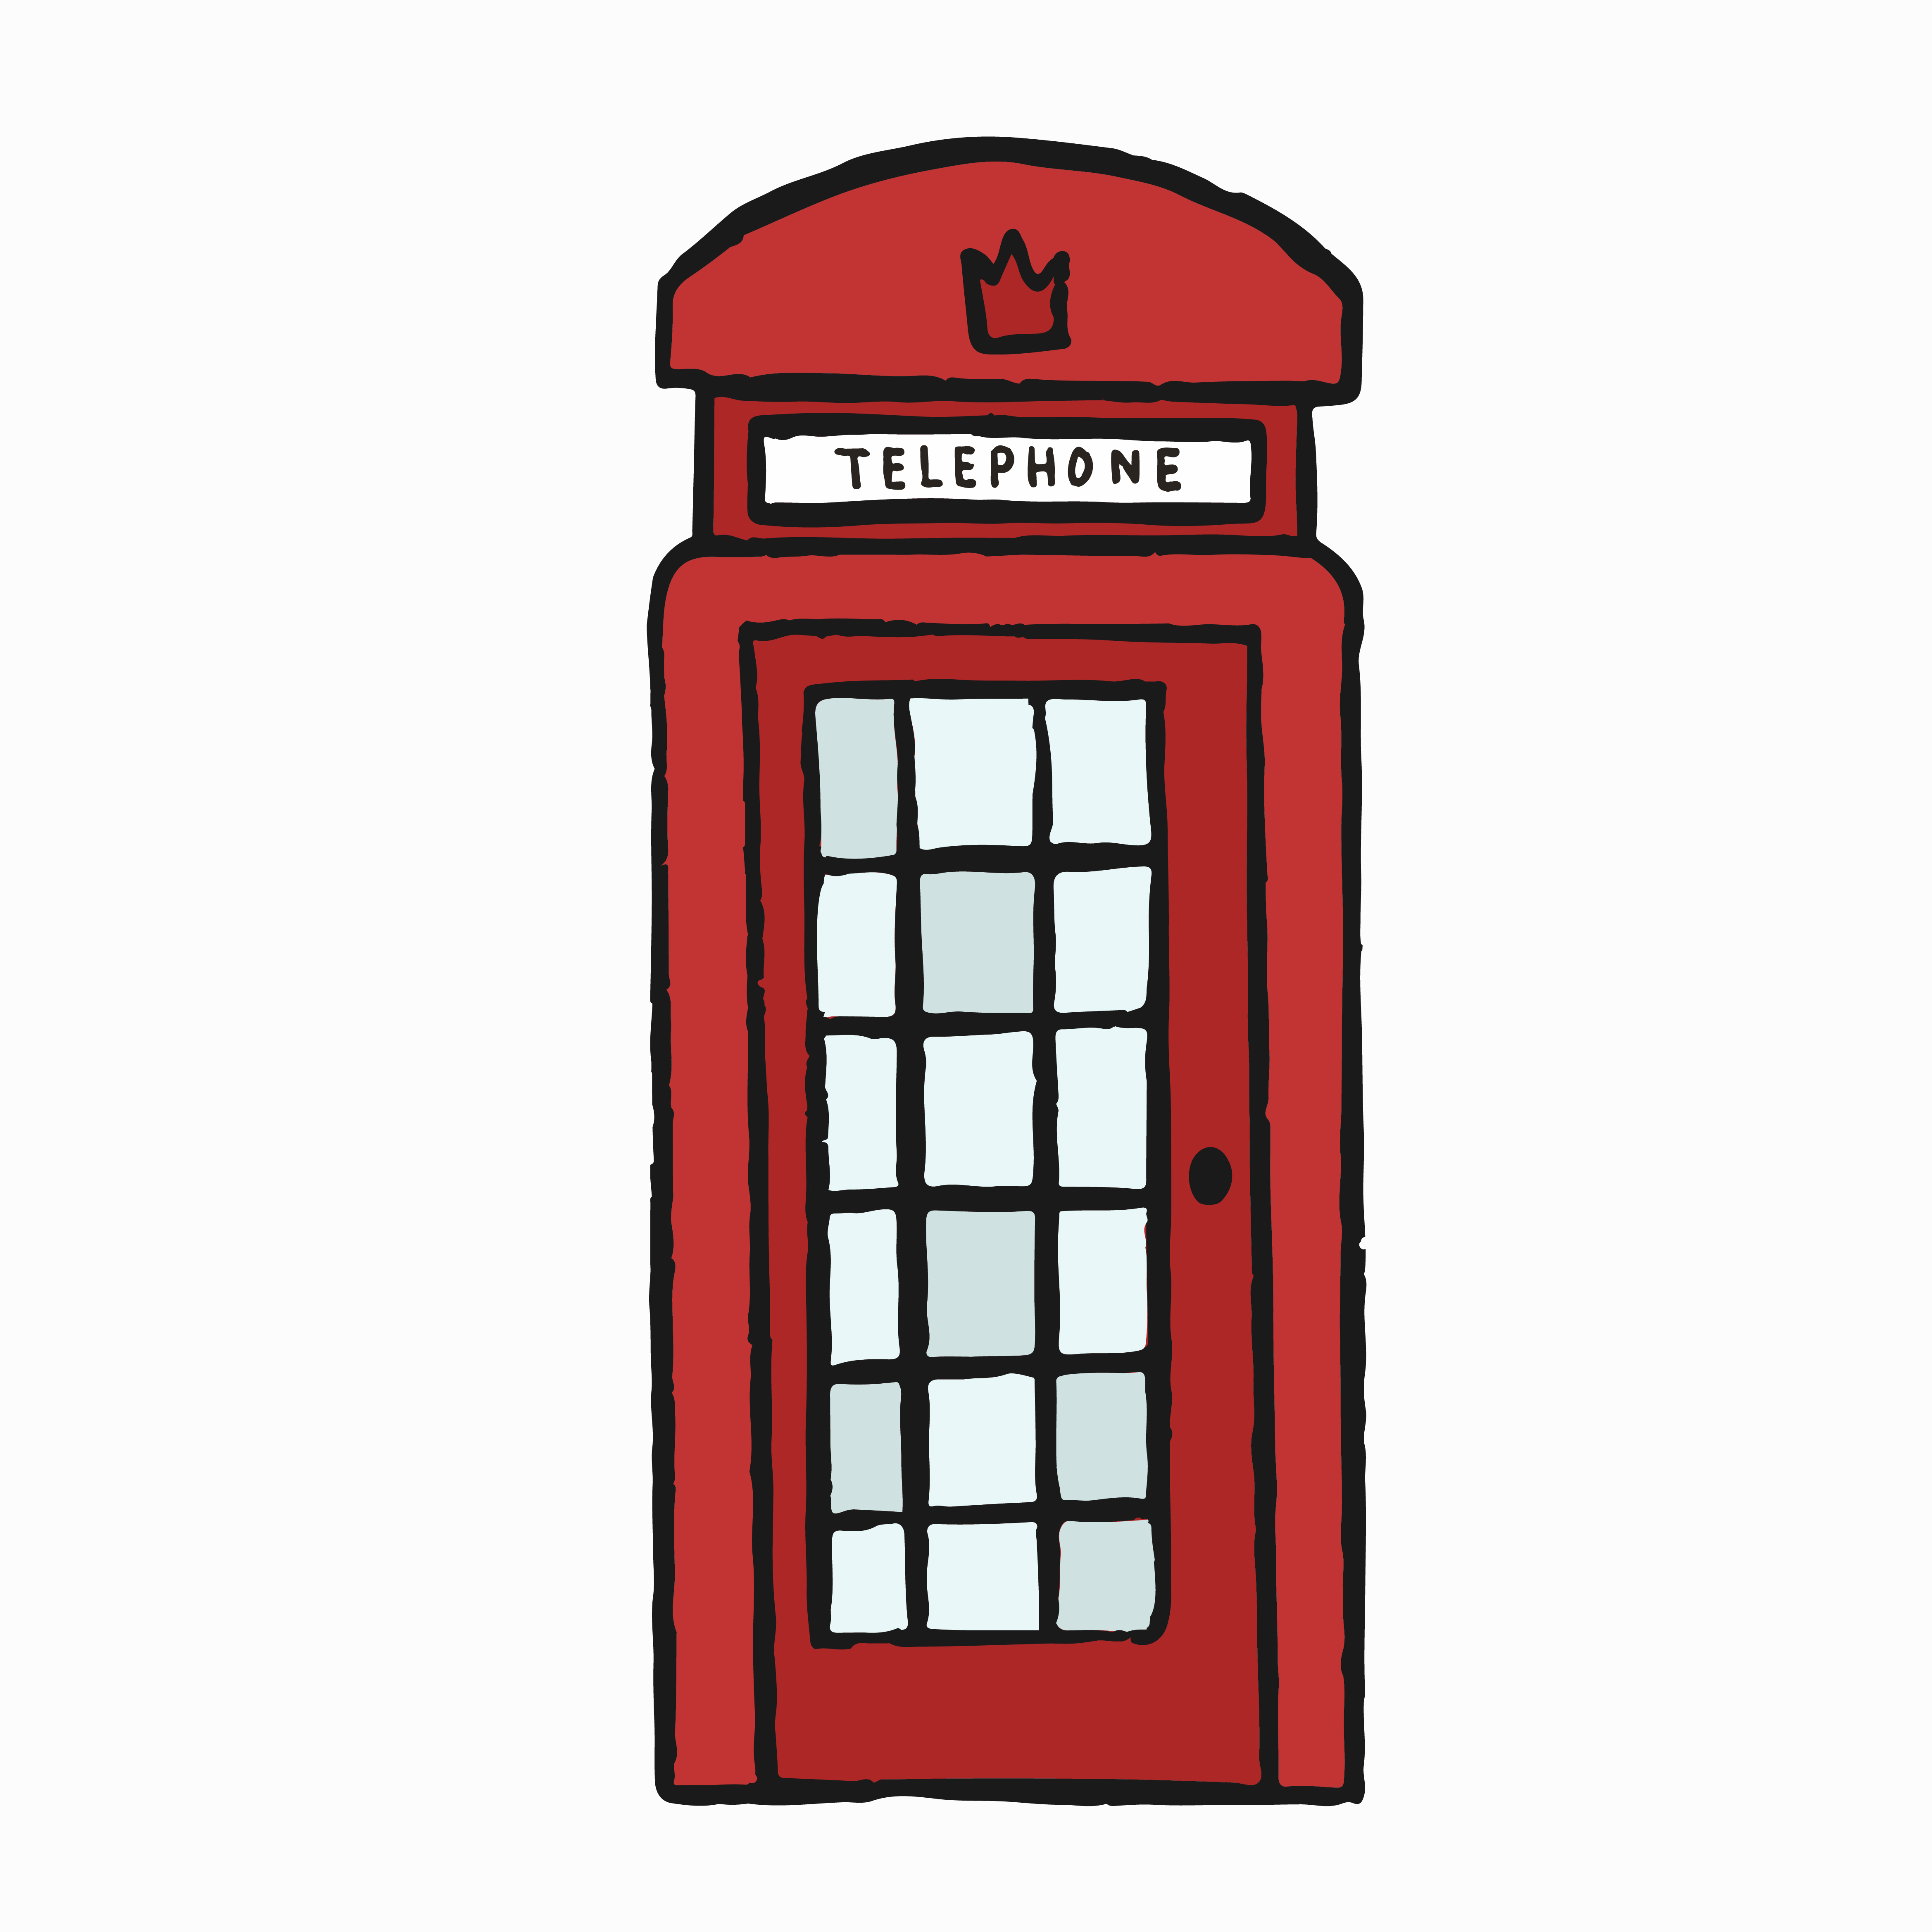 Telephone box clipart vector royalty free library British Telephone Box Free Vector Art - (25 Free Downloads) vector royalty free library